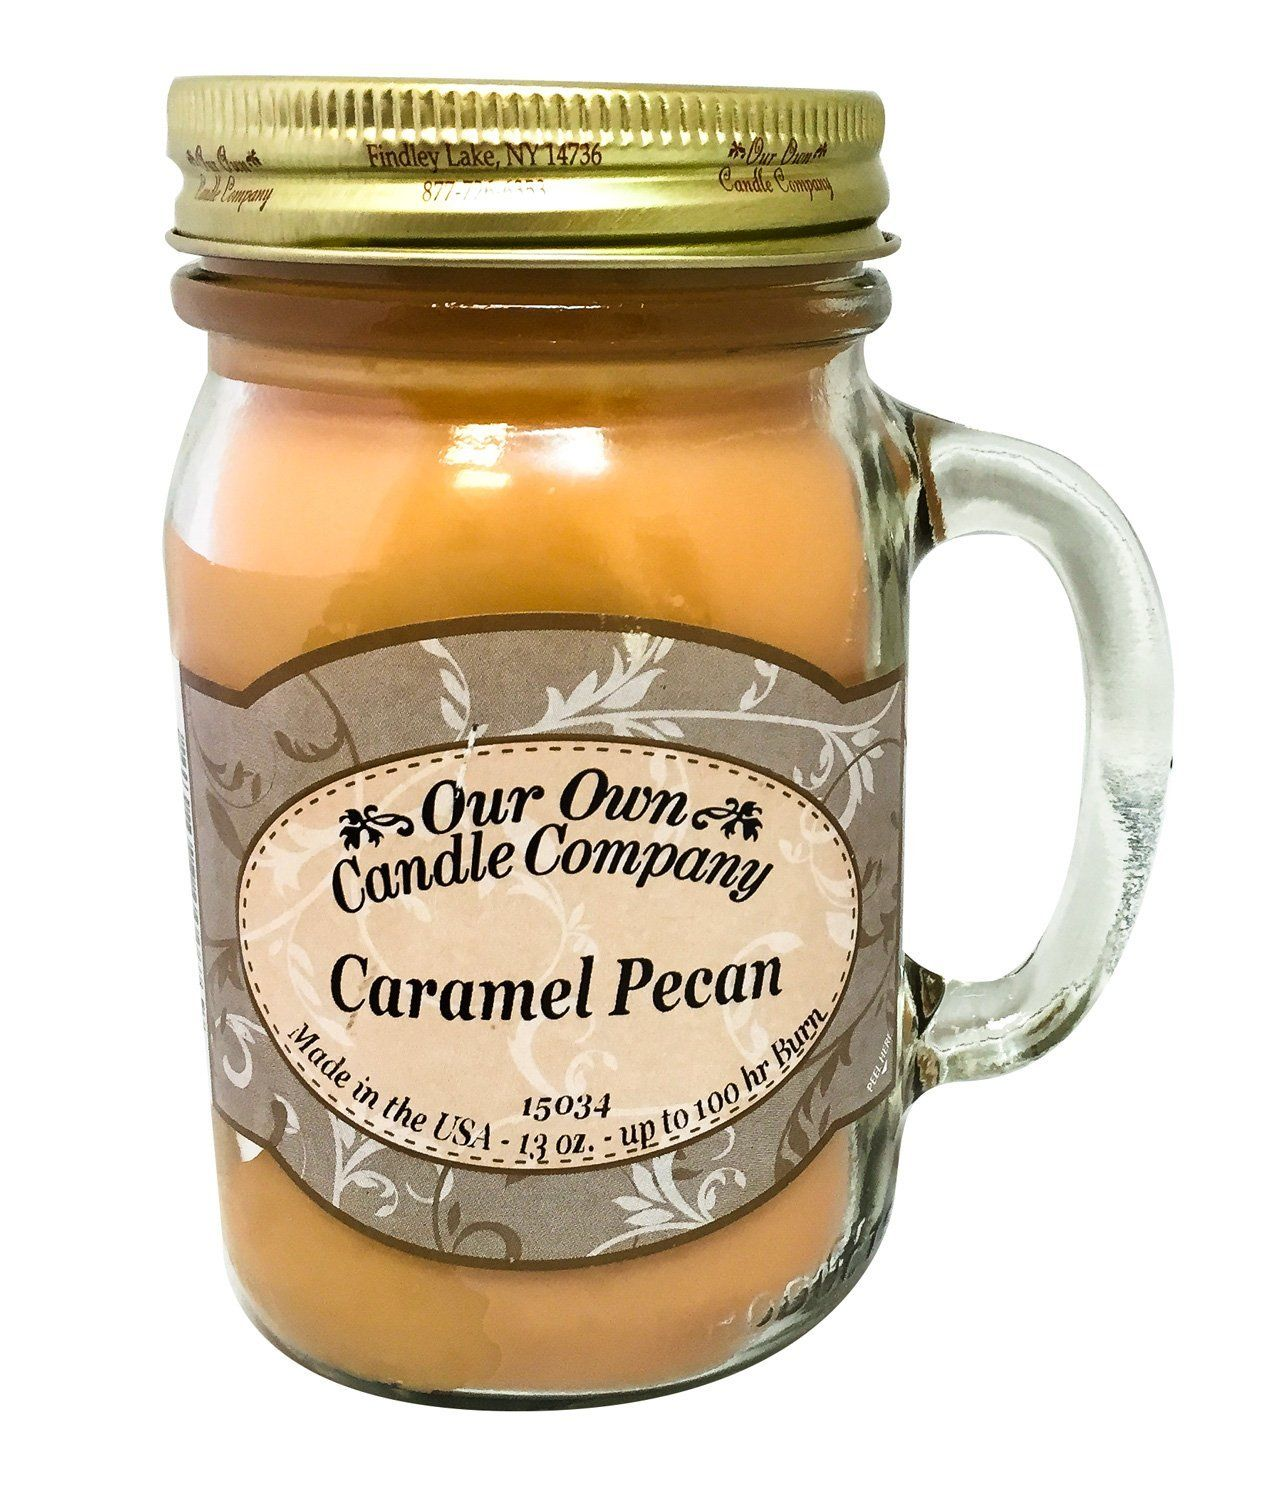 Caramel Pecan Scented 13 Ounce Mason Jar Candle By Our Own Candle Company >>> You can get additional details at the image link.